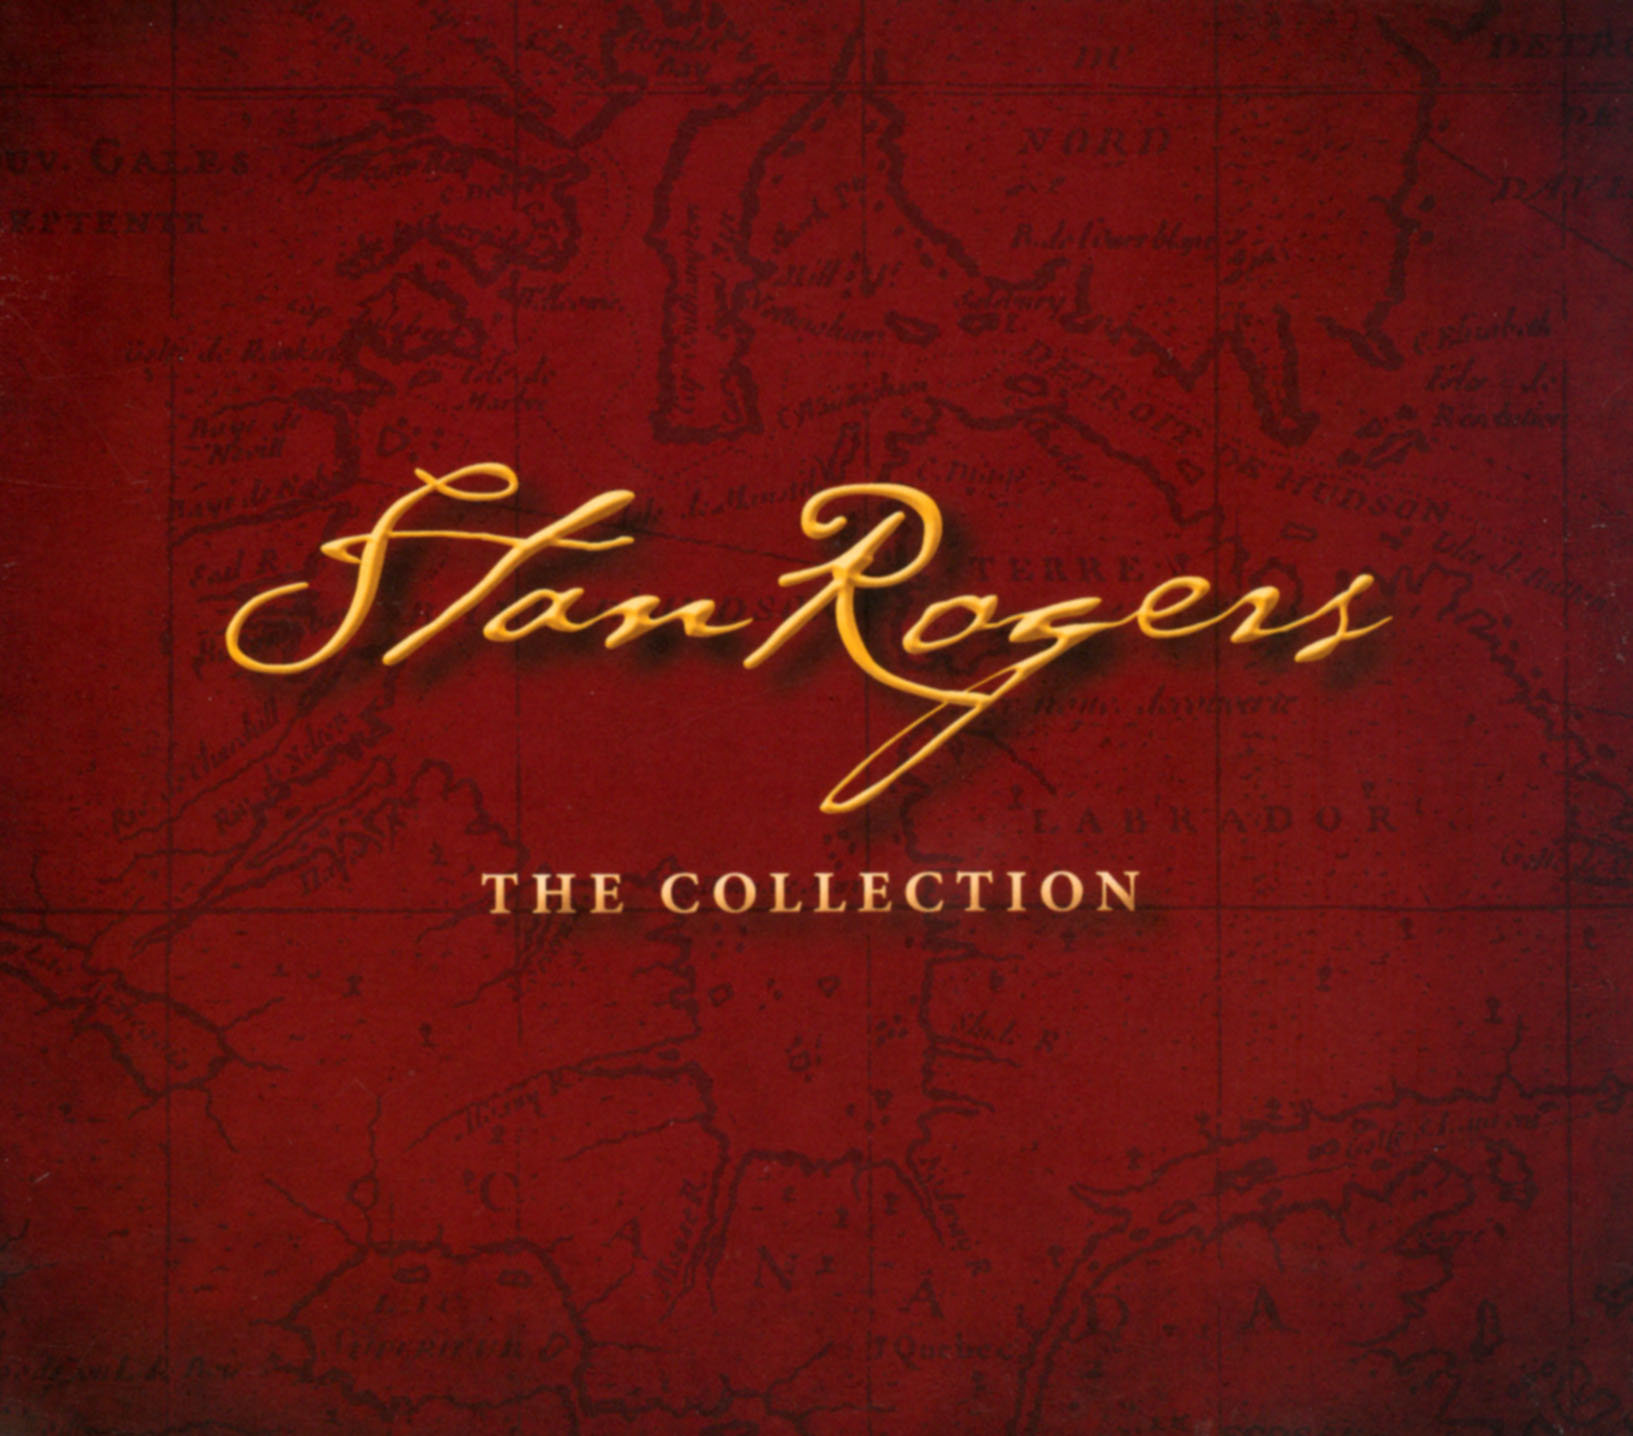 Stan Rogers: One Warm Line - The Legacy of Stan Rogers